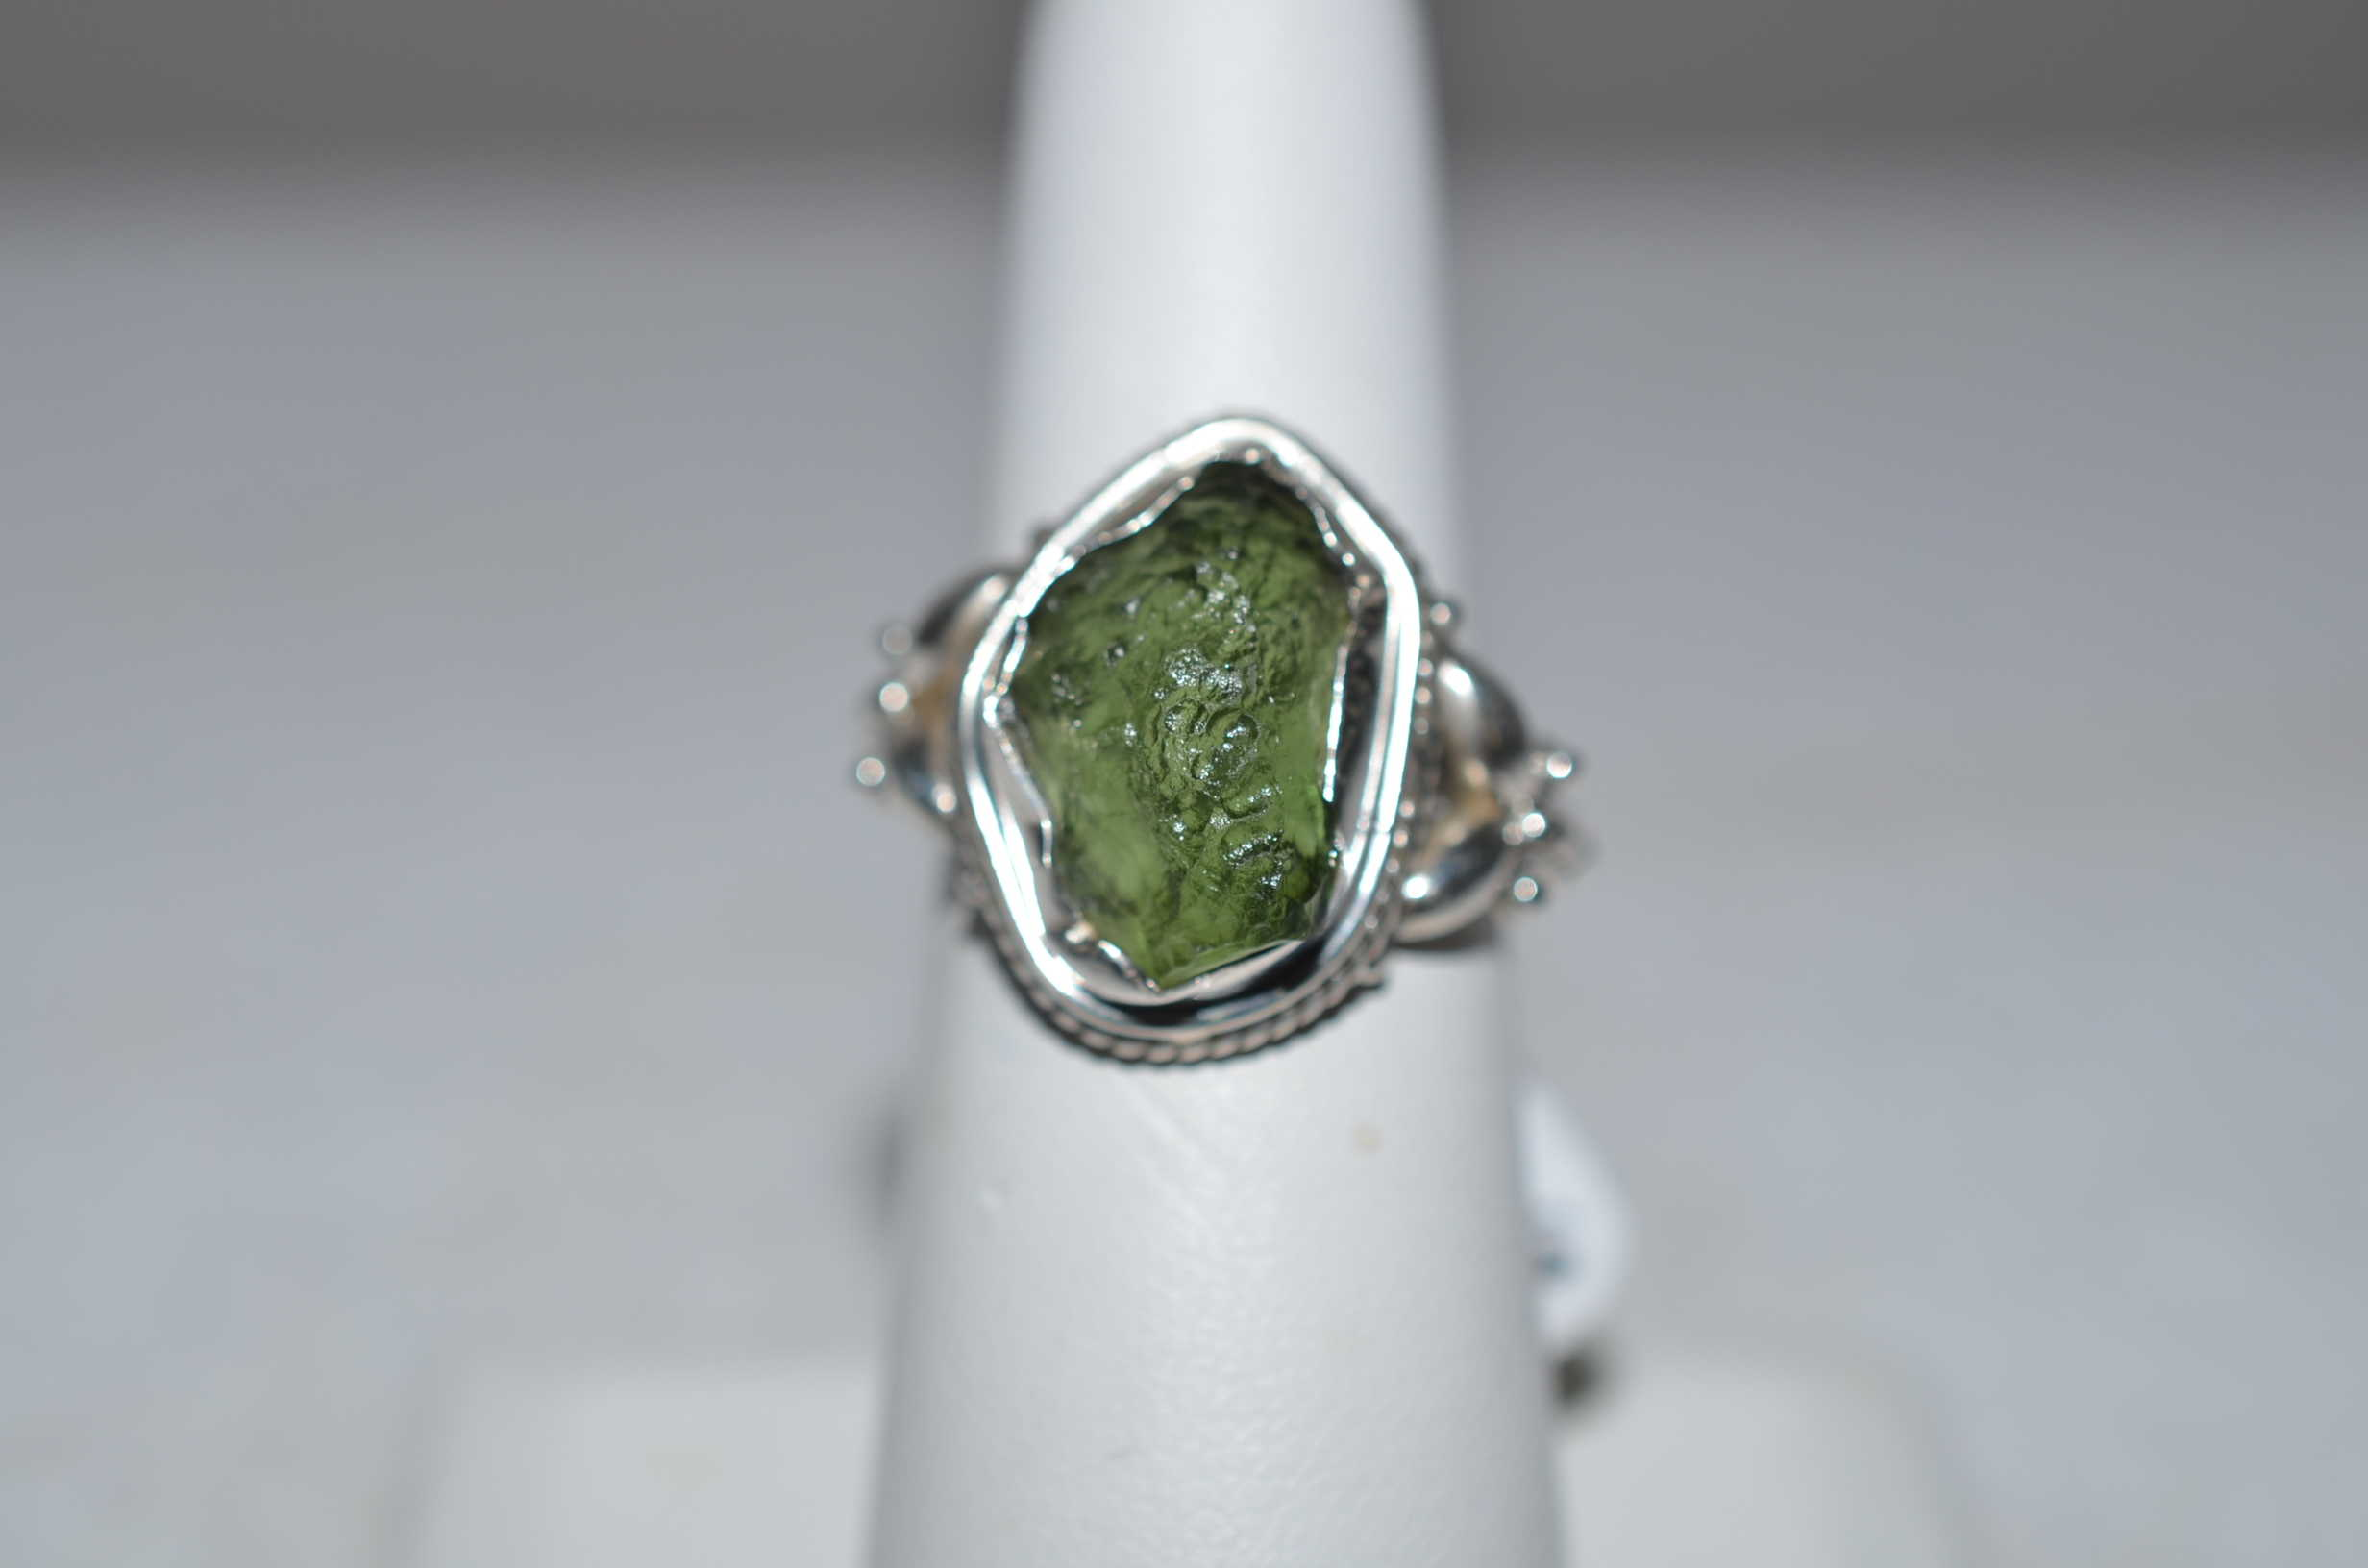 aiche jacquie fluorite ring product engagement crystal ls lockstock raw rings detail ja